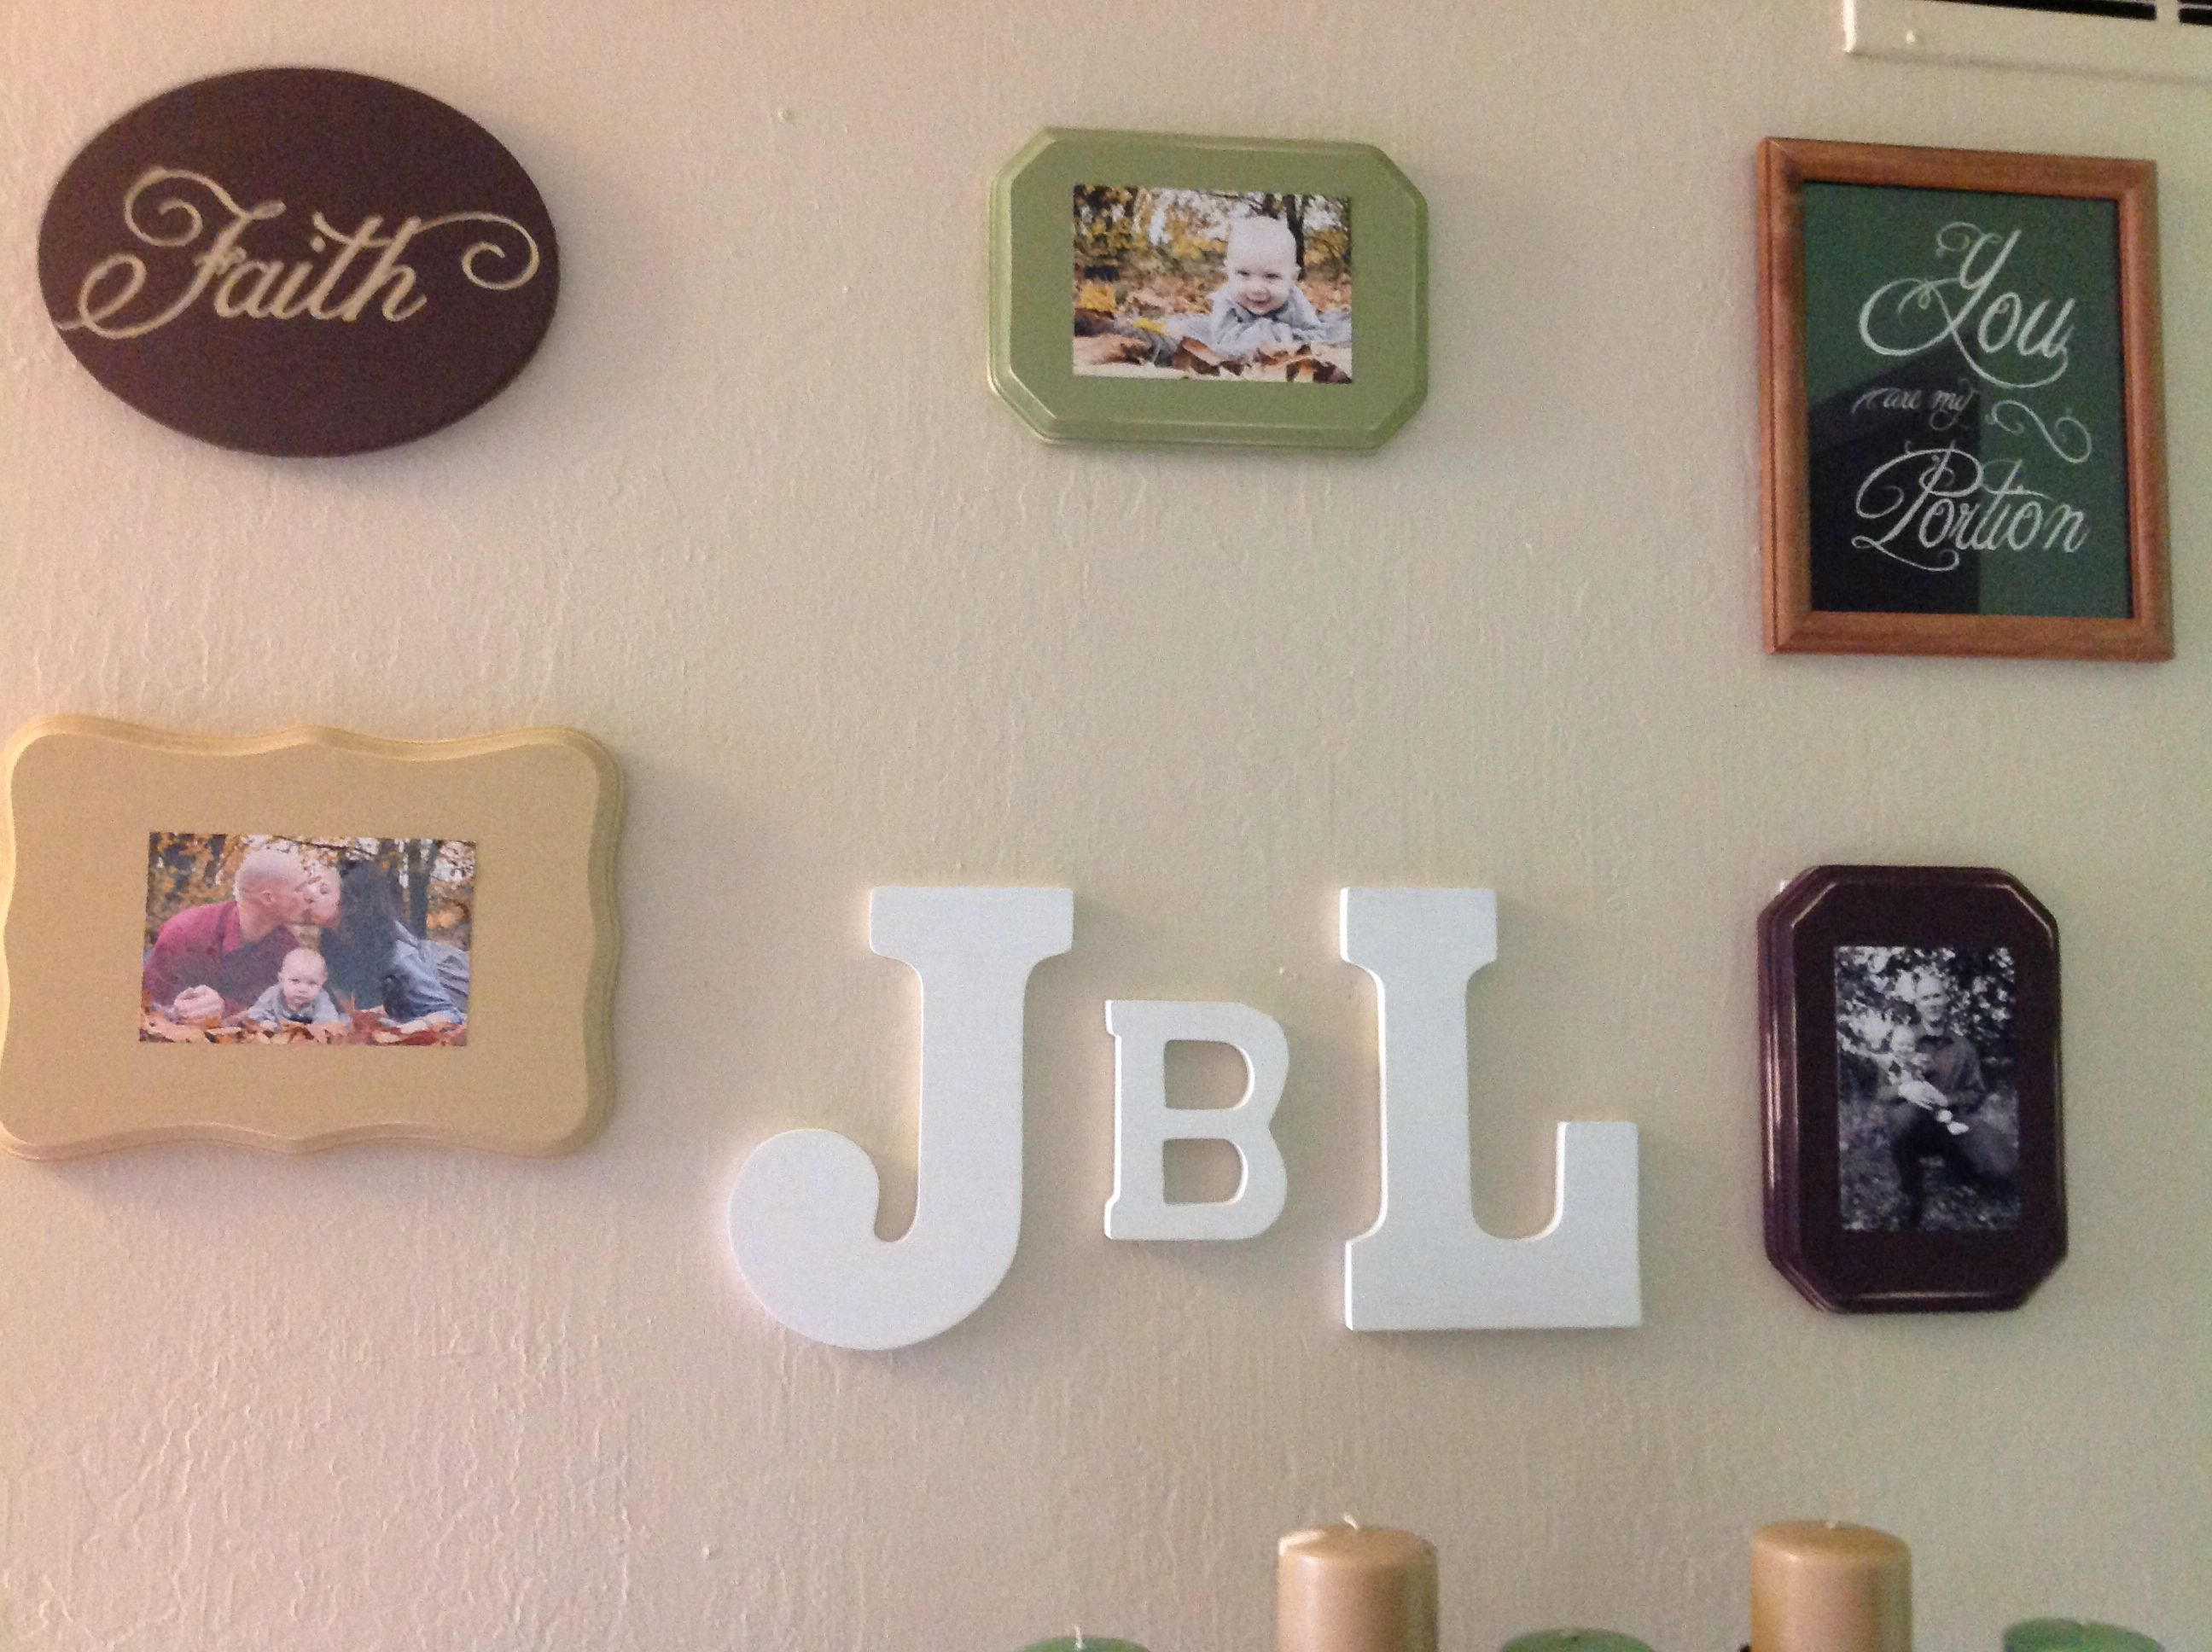 Wood plaques from hobby lobby and mod podge simply paint plaque